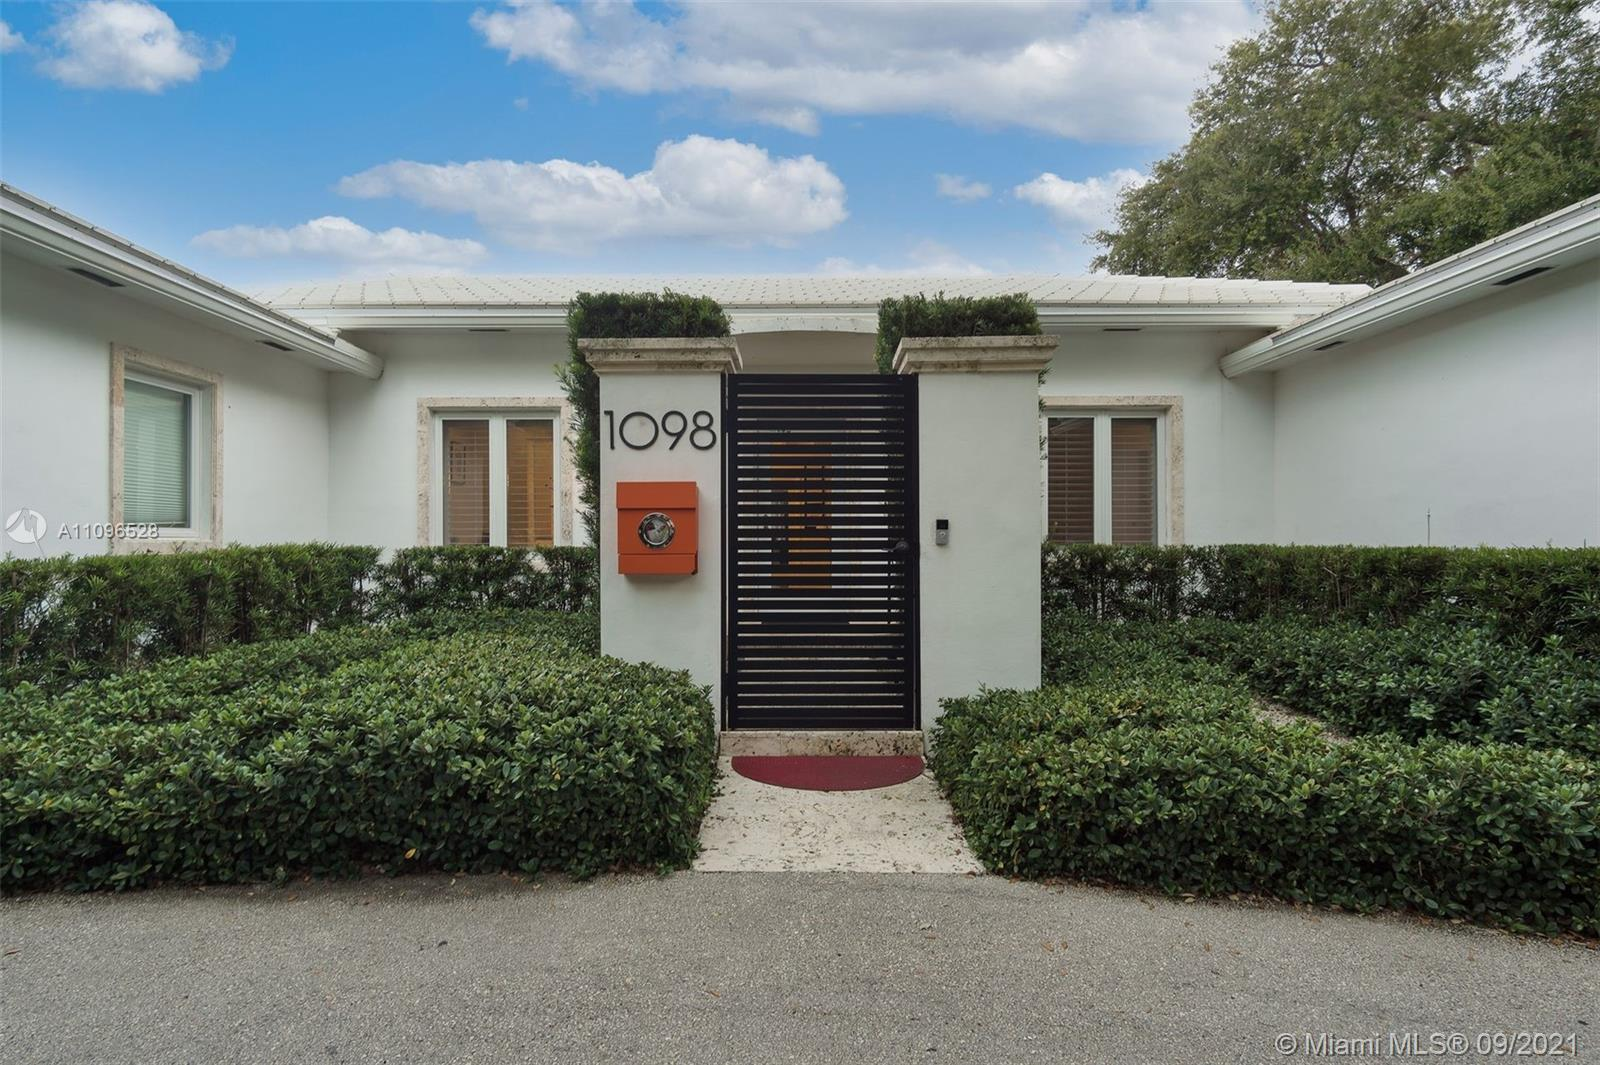 LUXURY OASIS WITHIN WALKING DISTANCE TO BISCAYNE BAY AND THE MIAMI SHORES GOLF AND COUNTRY CLUB.  3